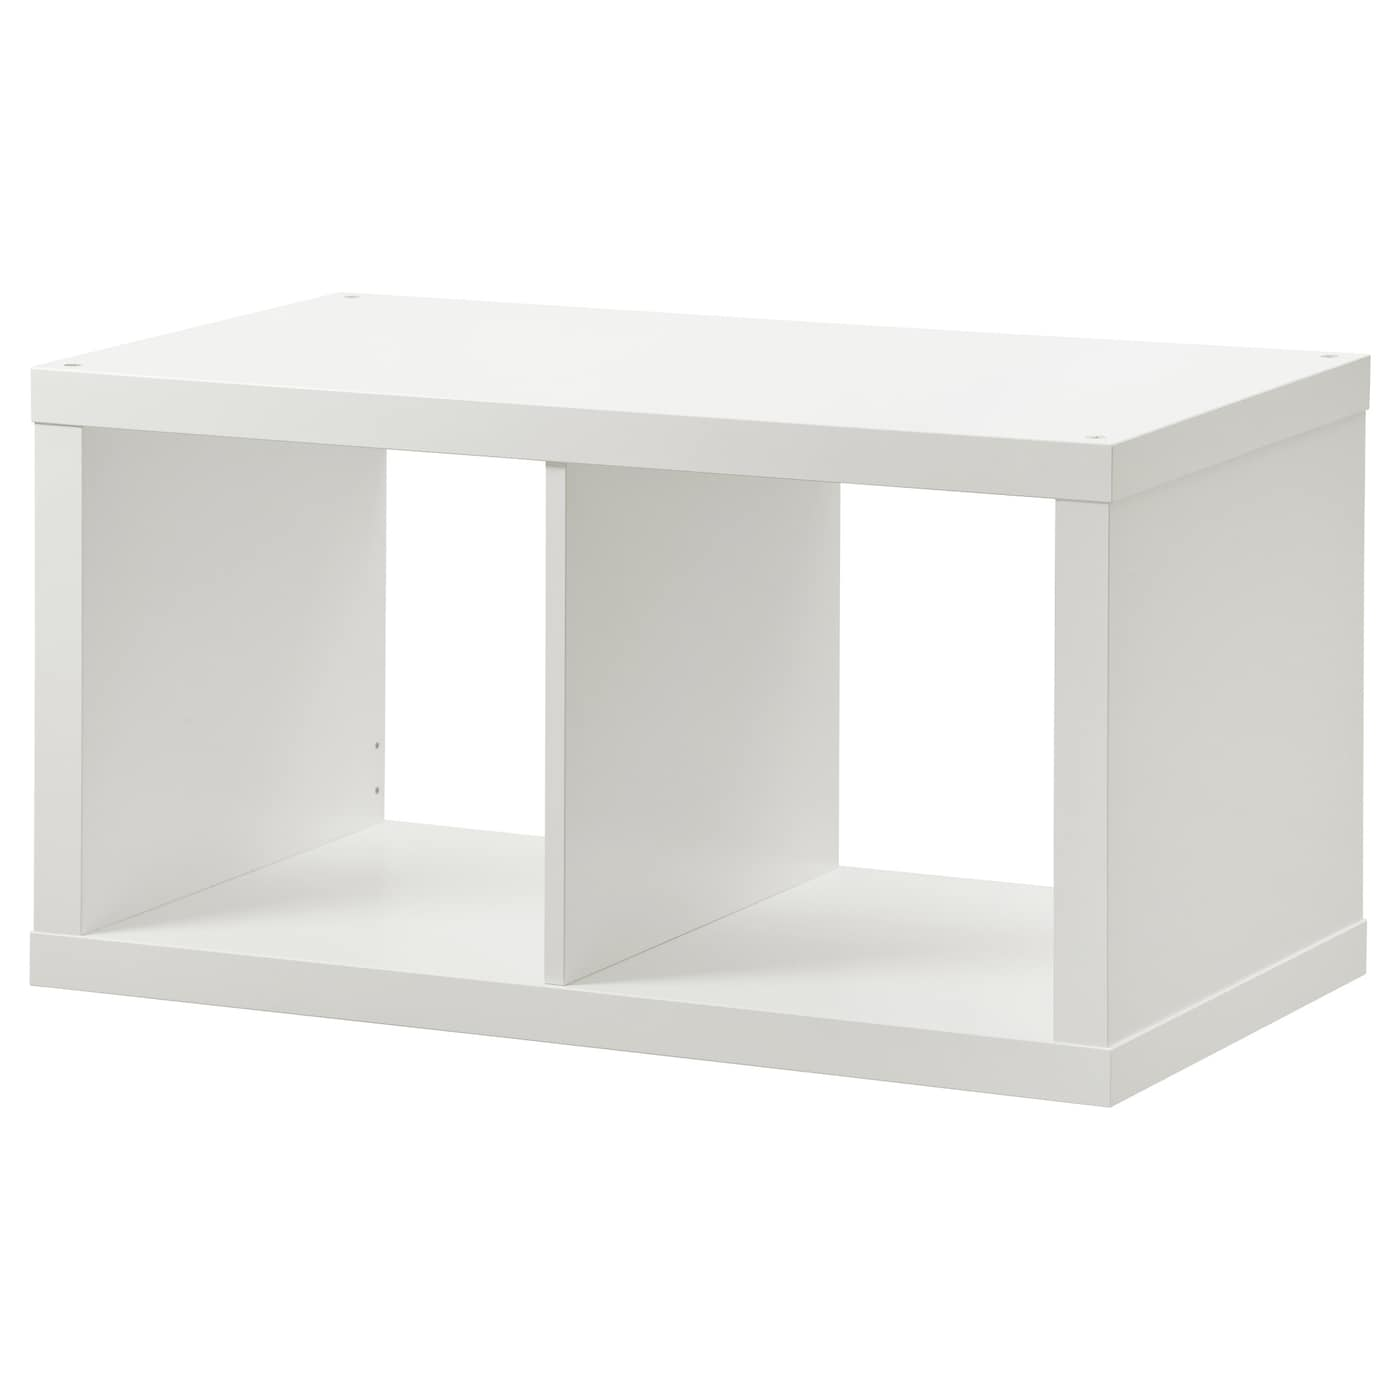 kallax shelving unit white 77 x 42 cm - ikea